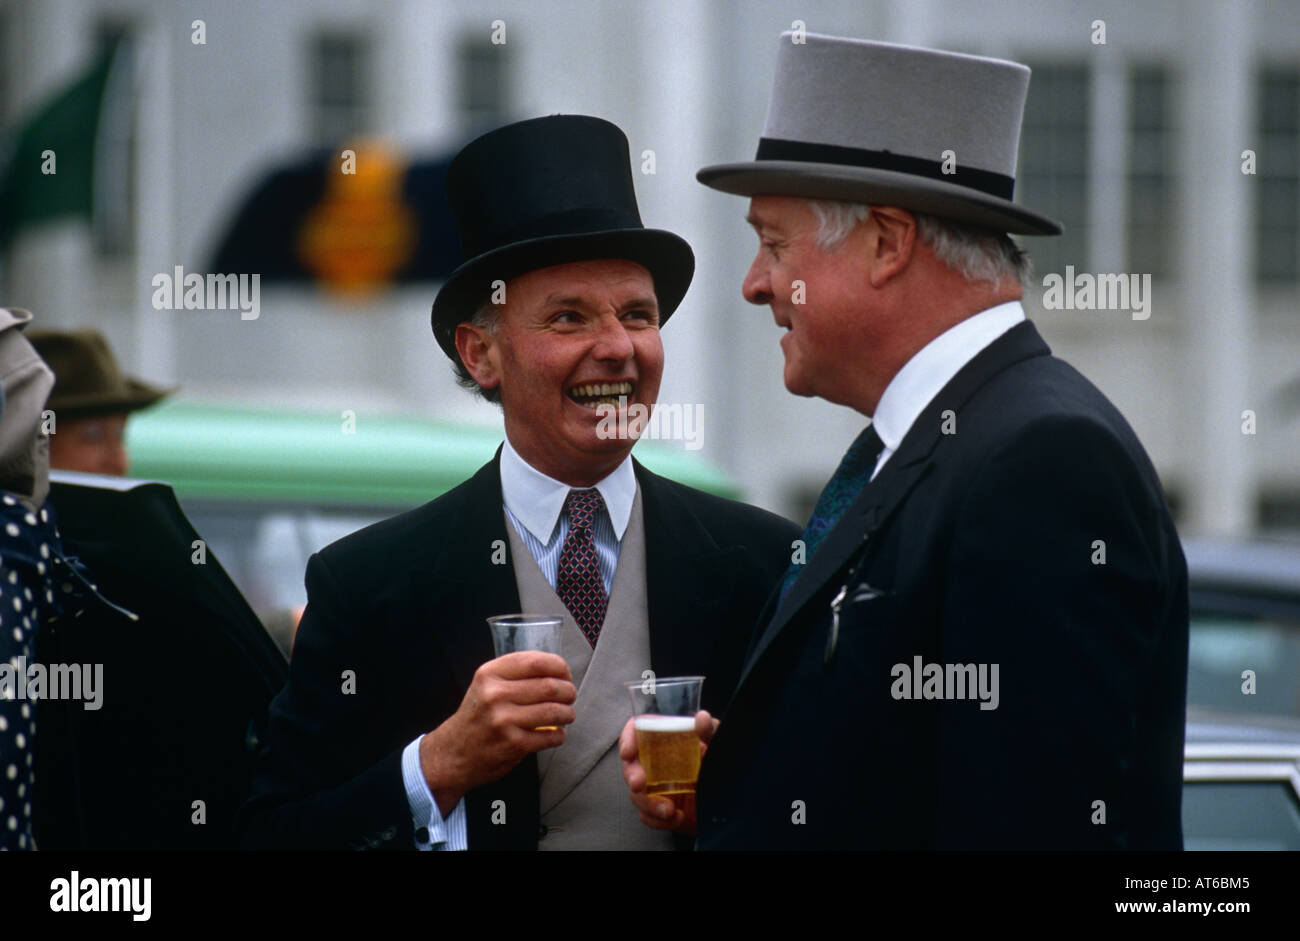 Two men drinking champagne at a picnic in the car park on Derby Day at Epsom racecourse, Surrey UK - Stock Image